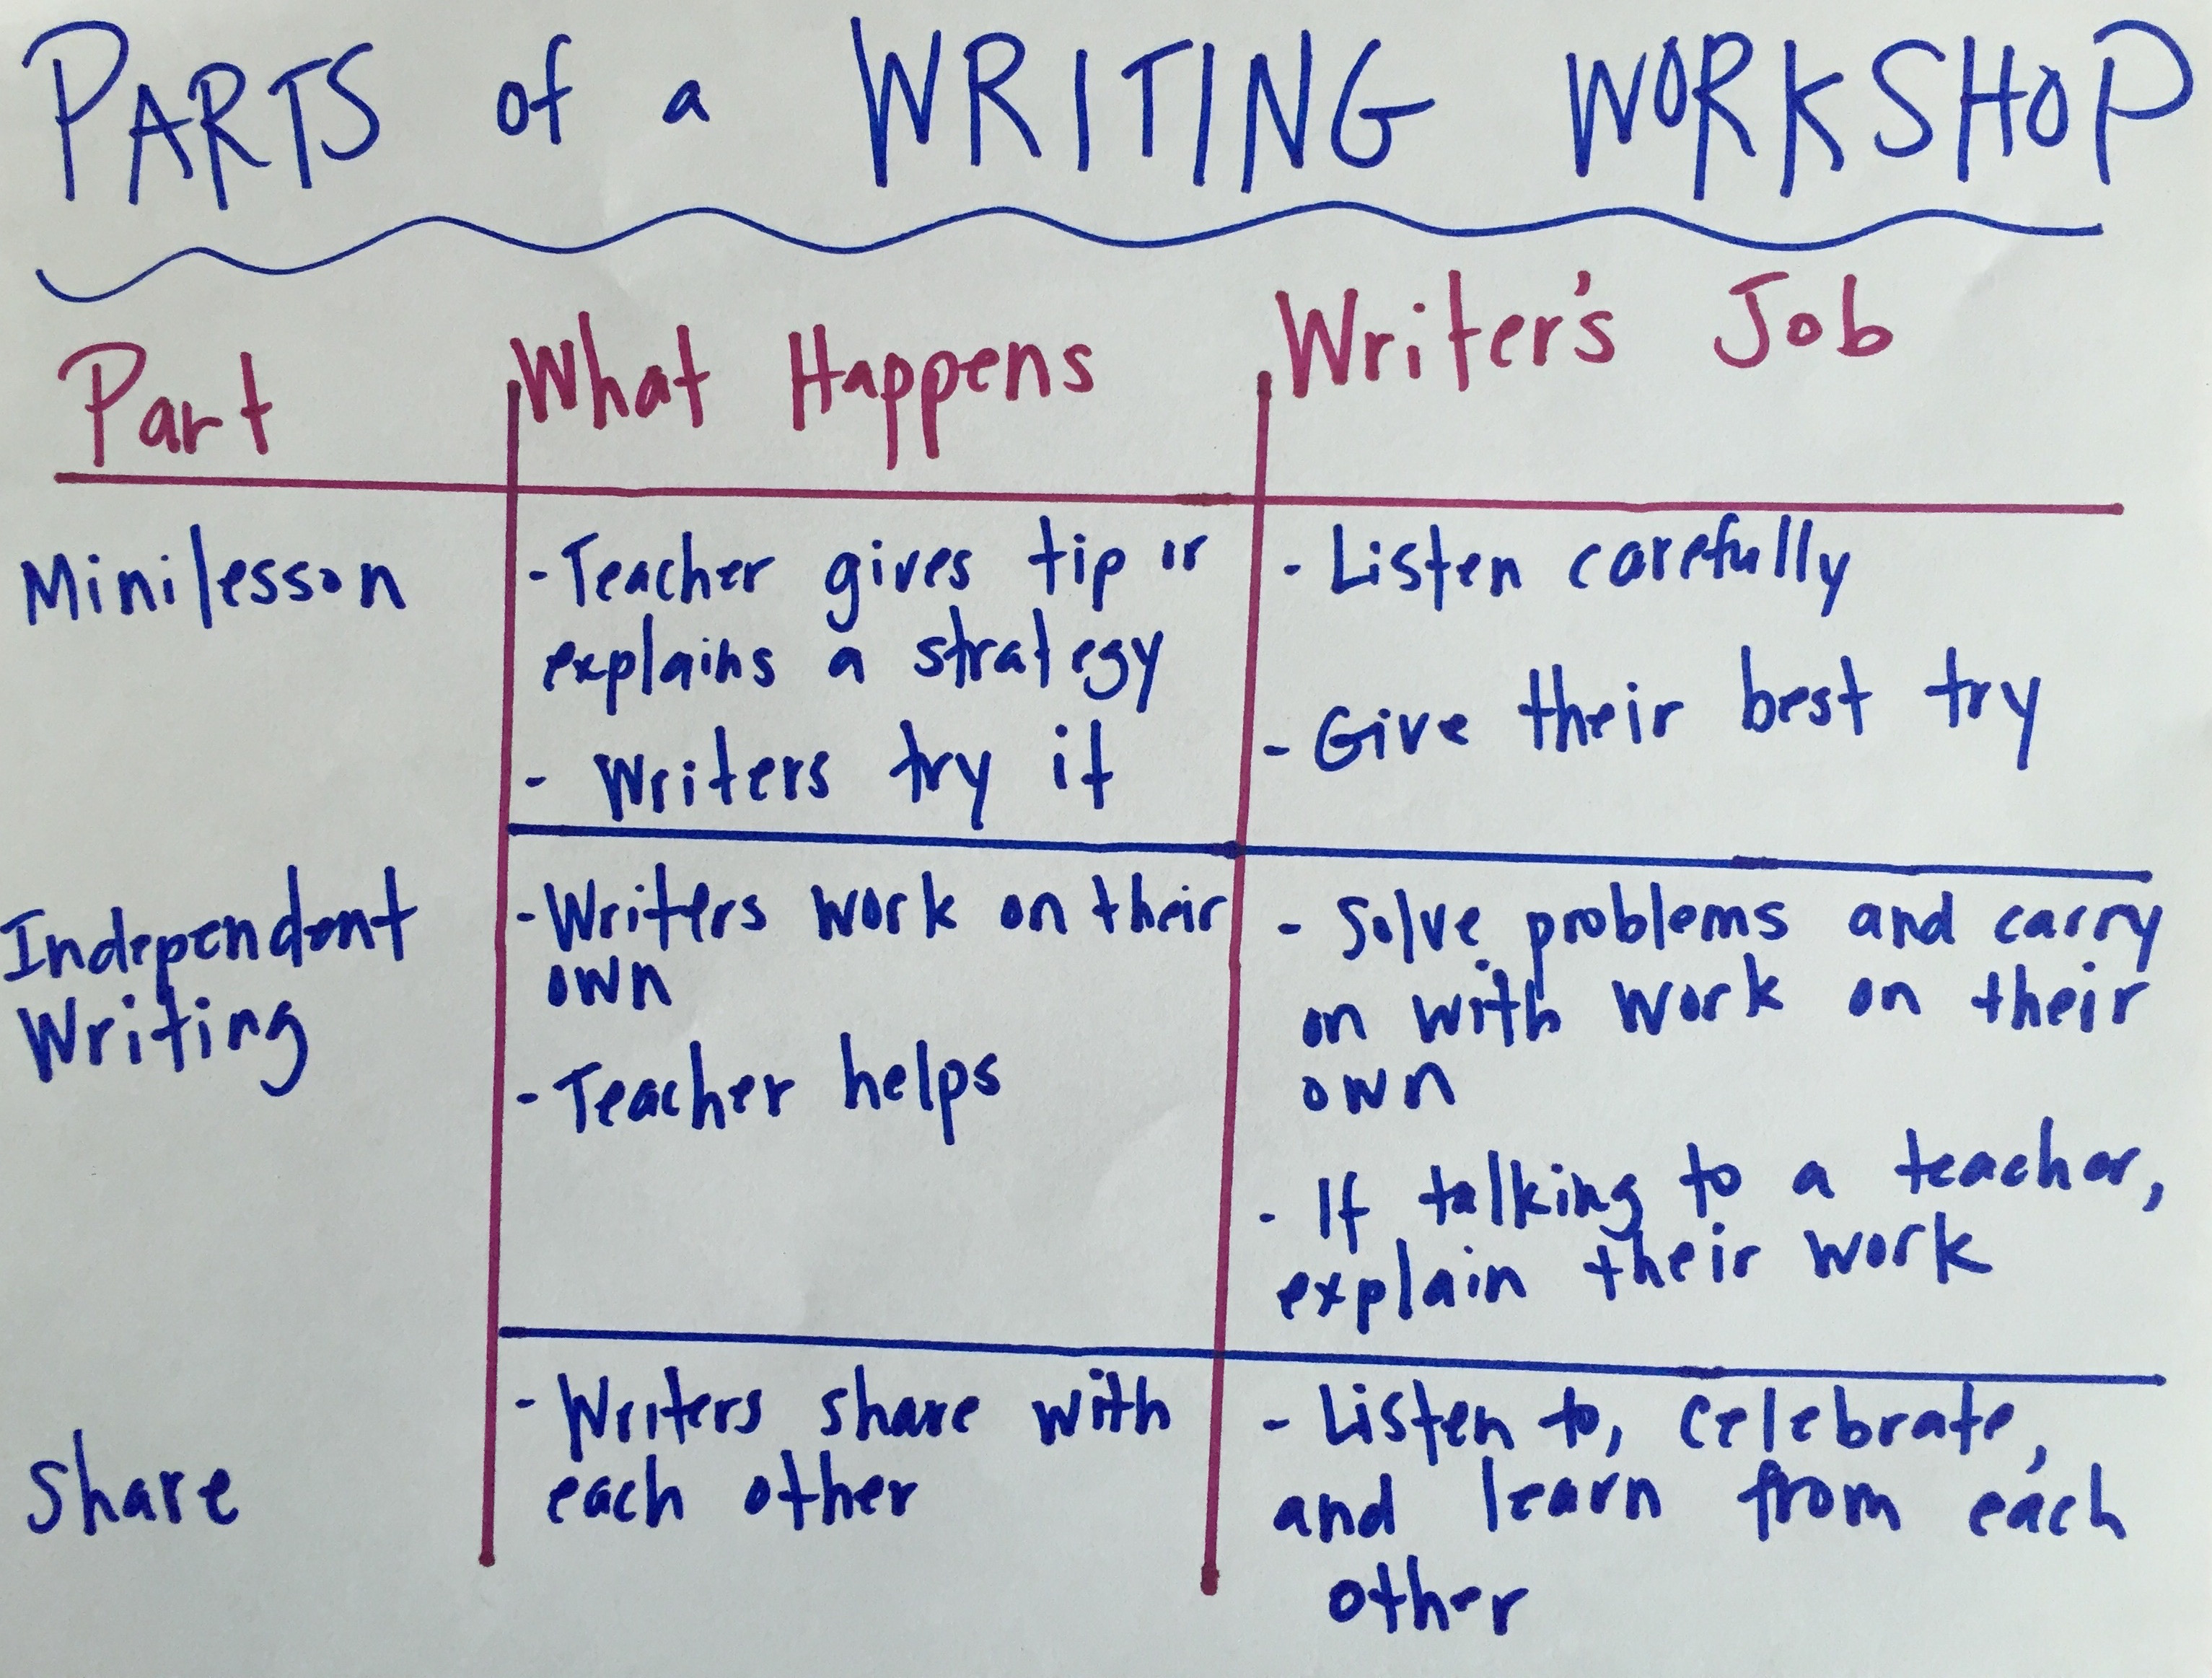 teaching writers about writing workshop two writing teachers parts of a ww chart